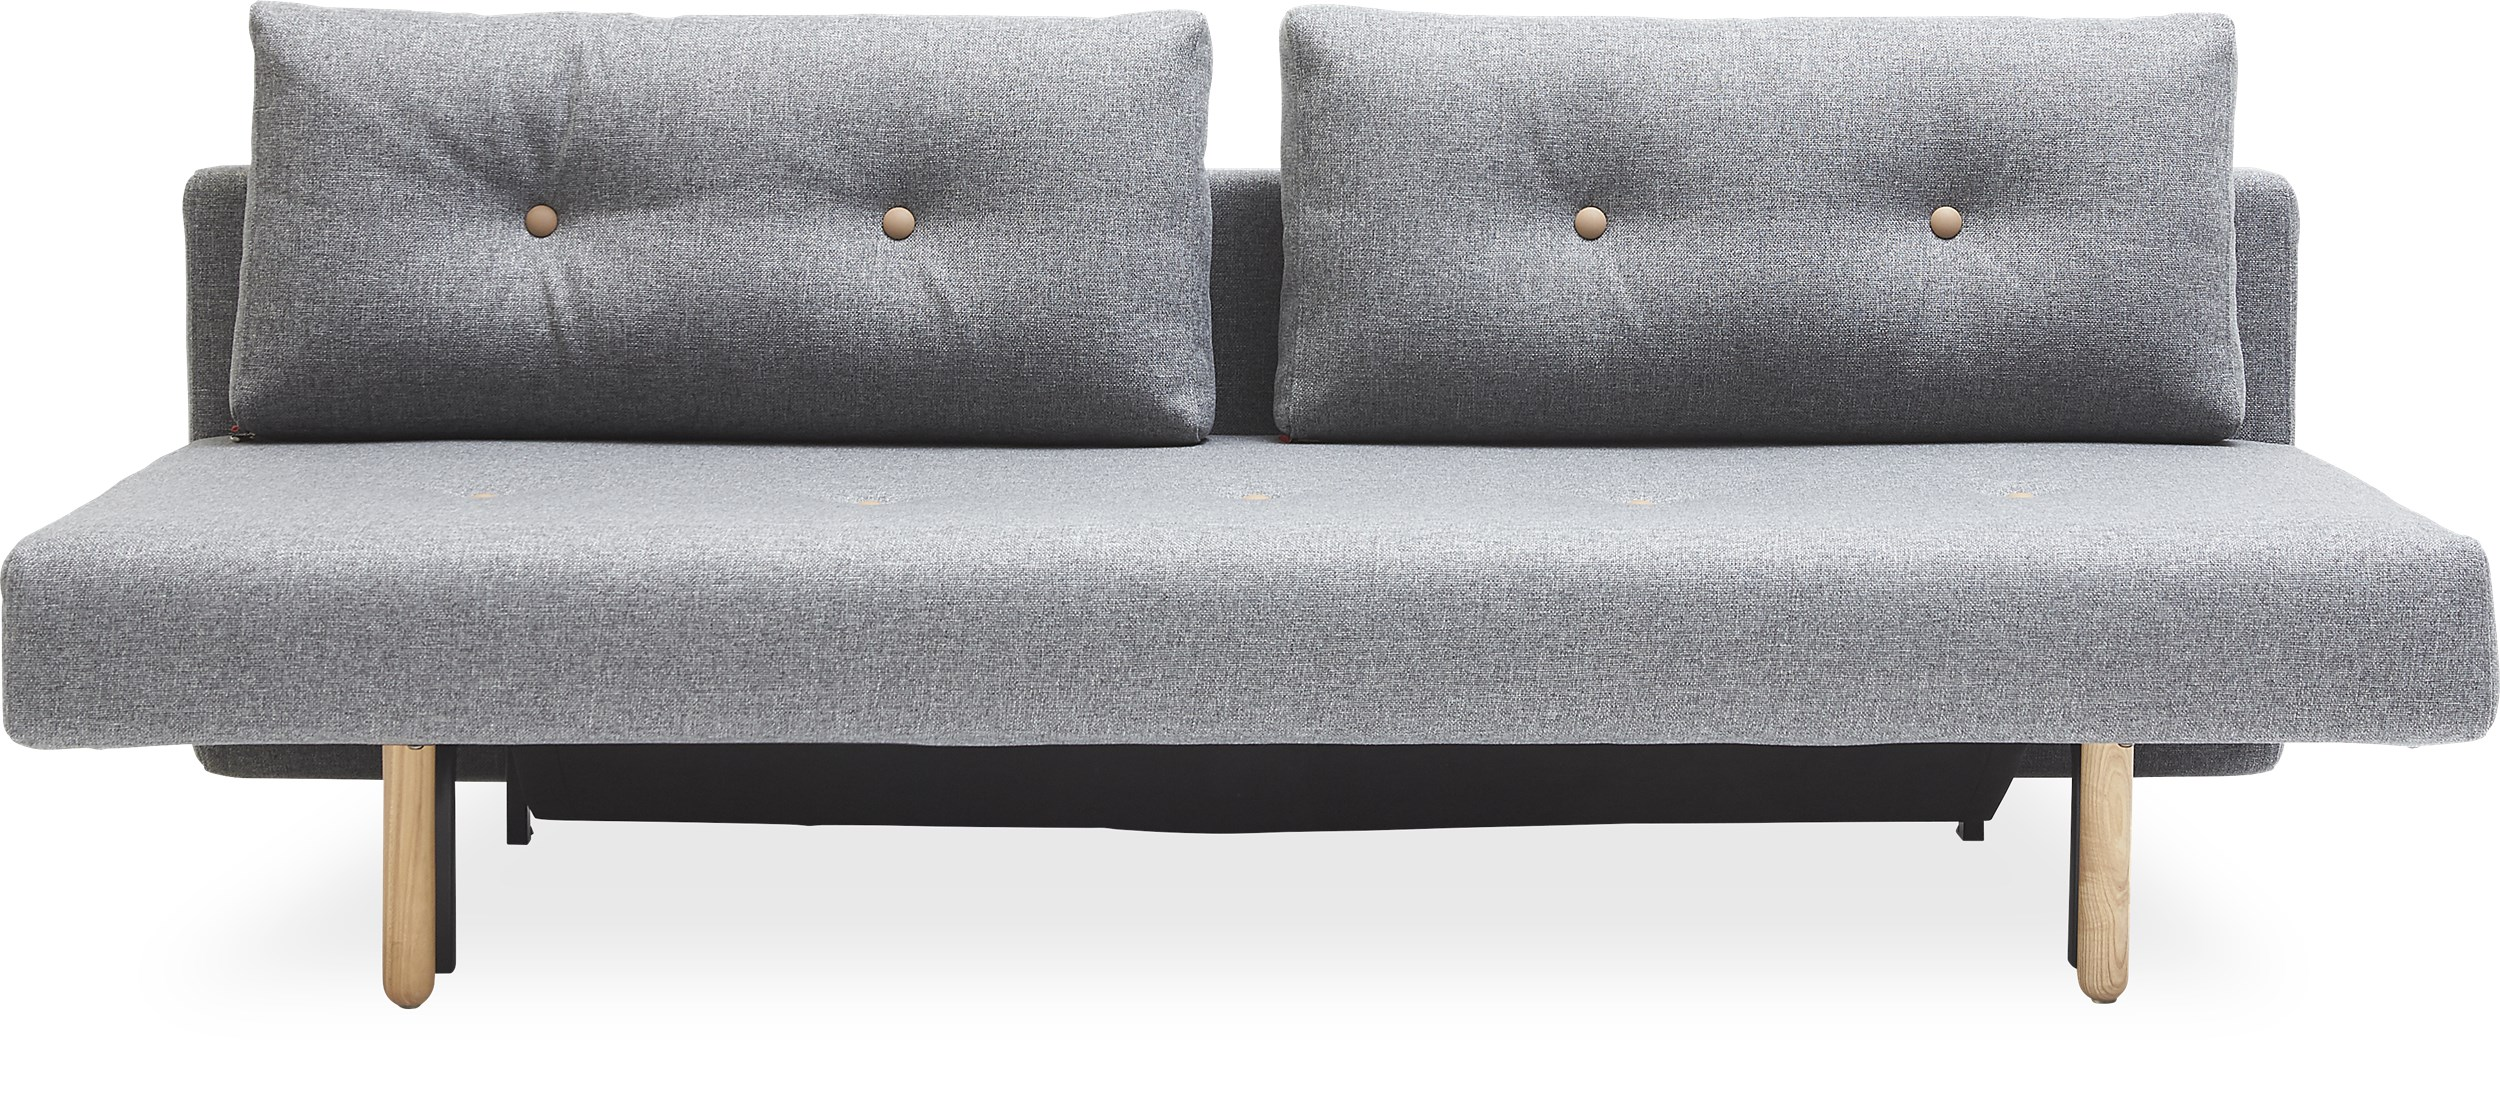 Innovation Living - Loke Sovesofa